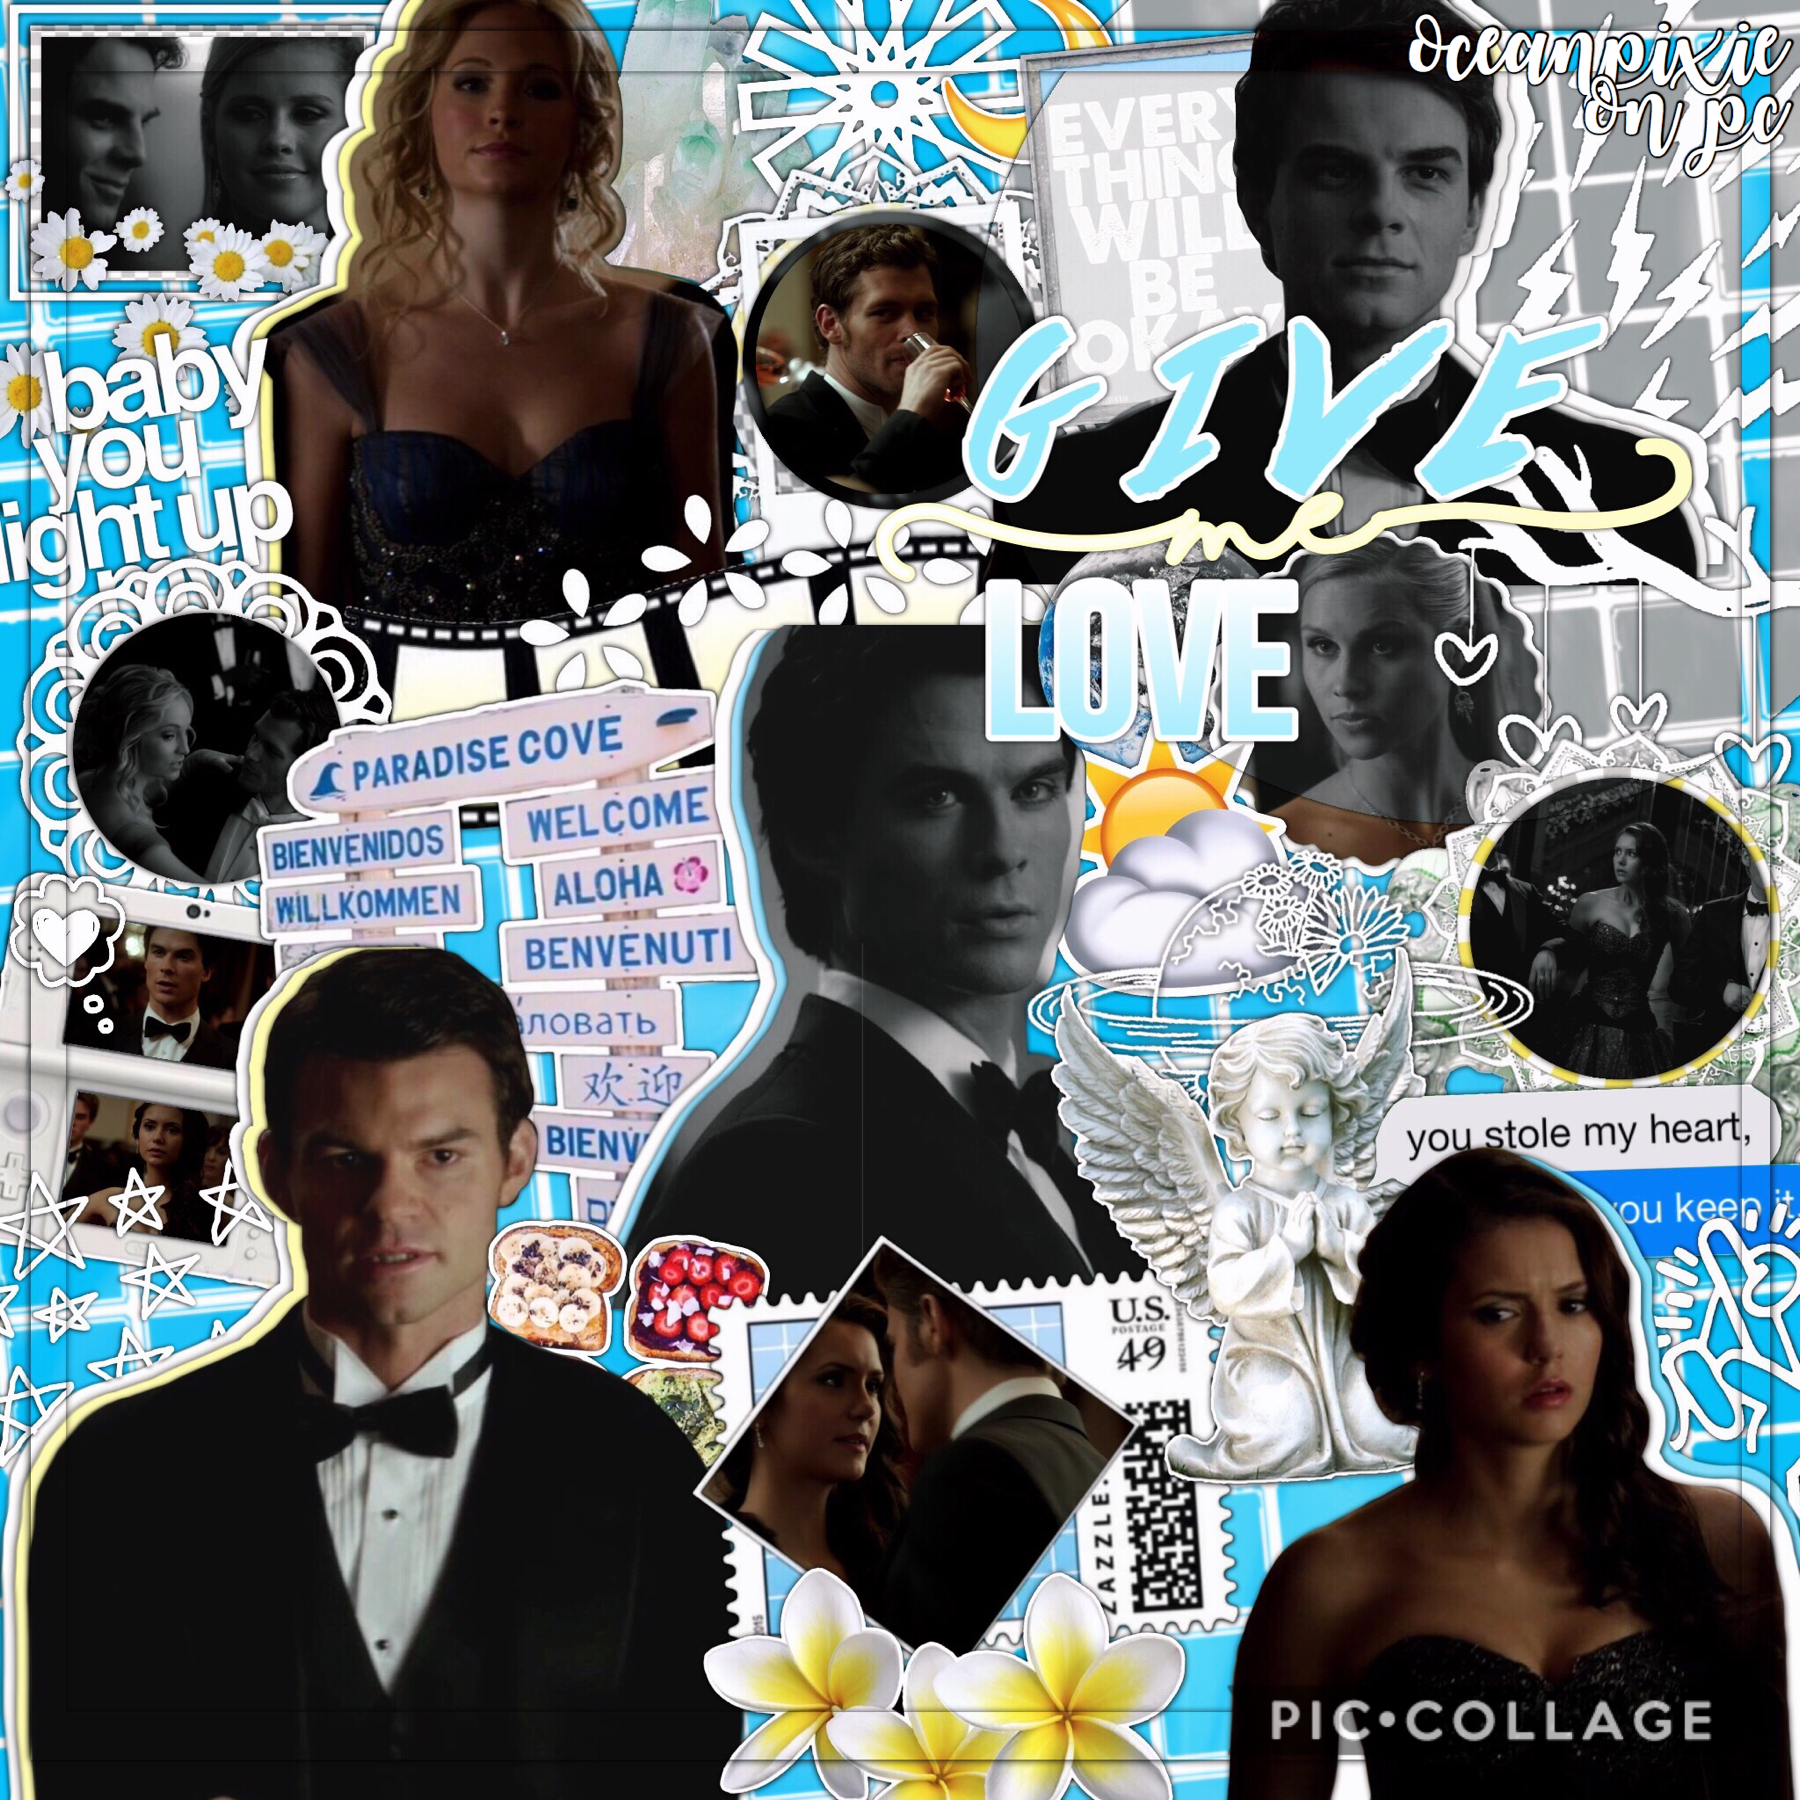 no one is active on here but here is this tvd edit i made a long time ago!